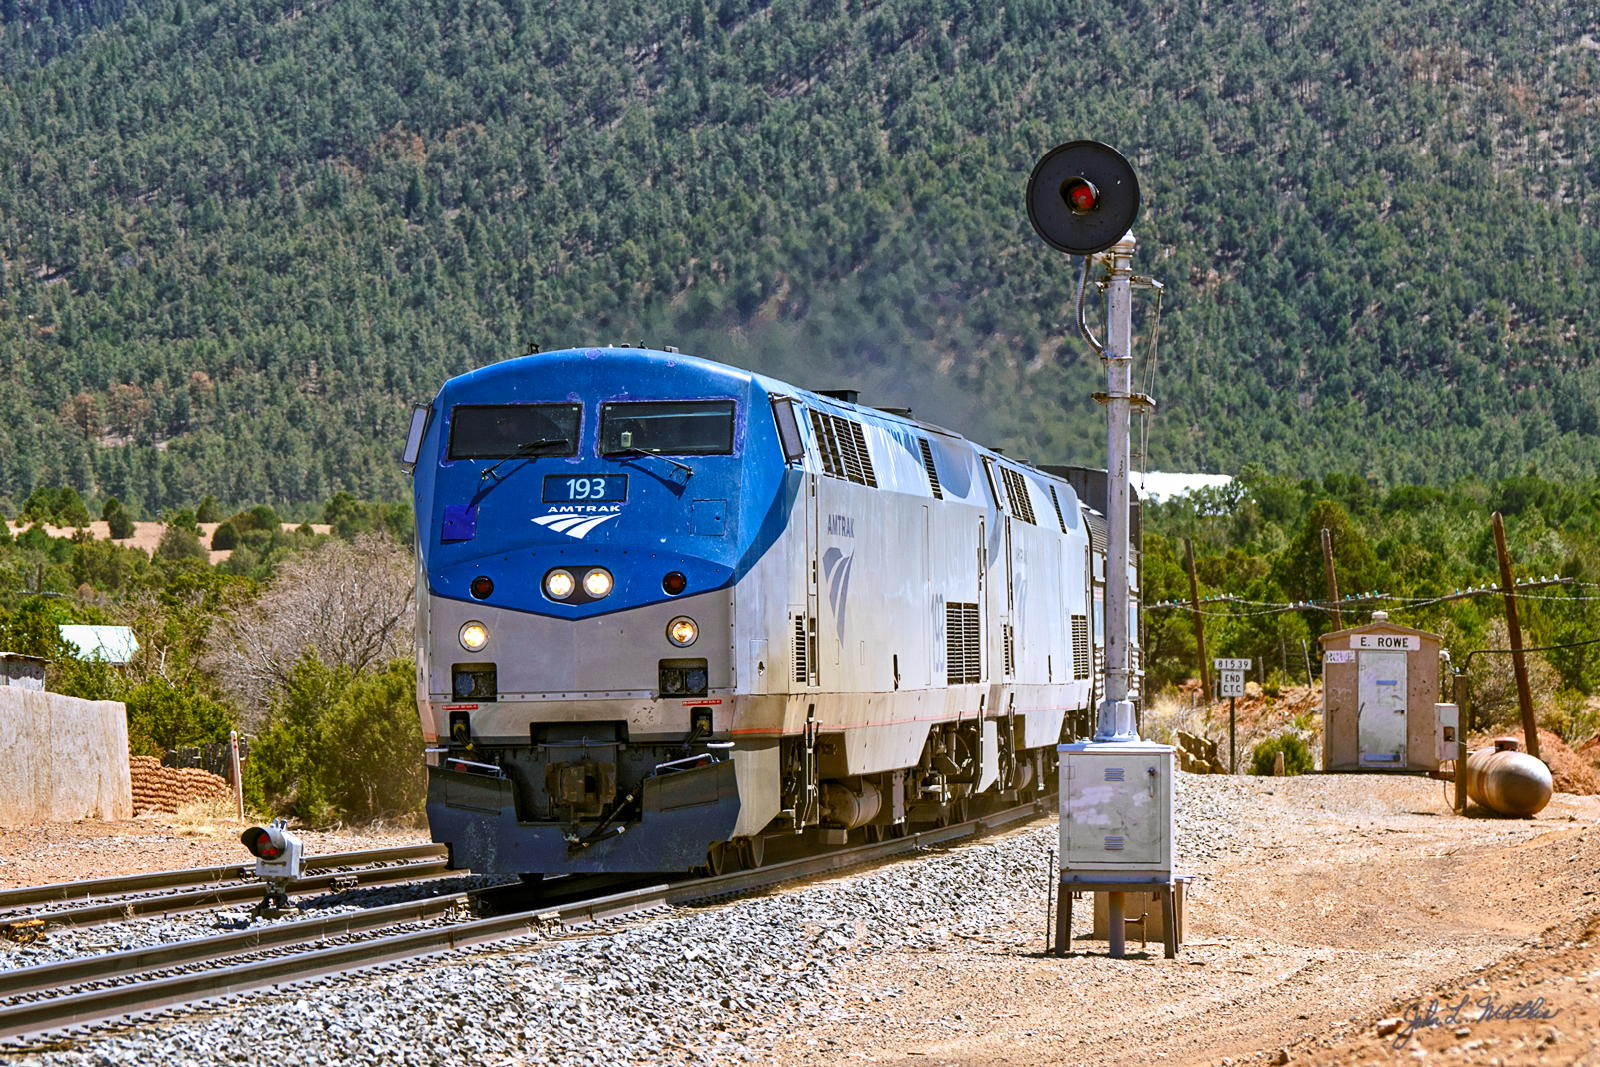 Amtrak 193 at East Rowe, NM on April 19, 2013.